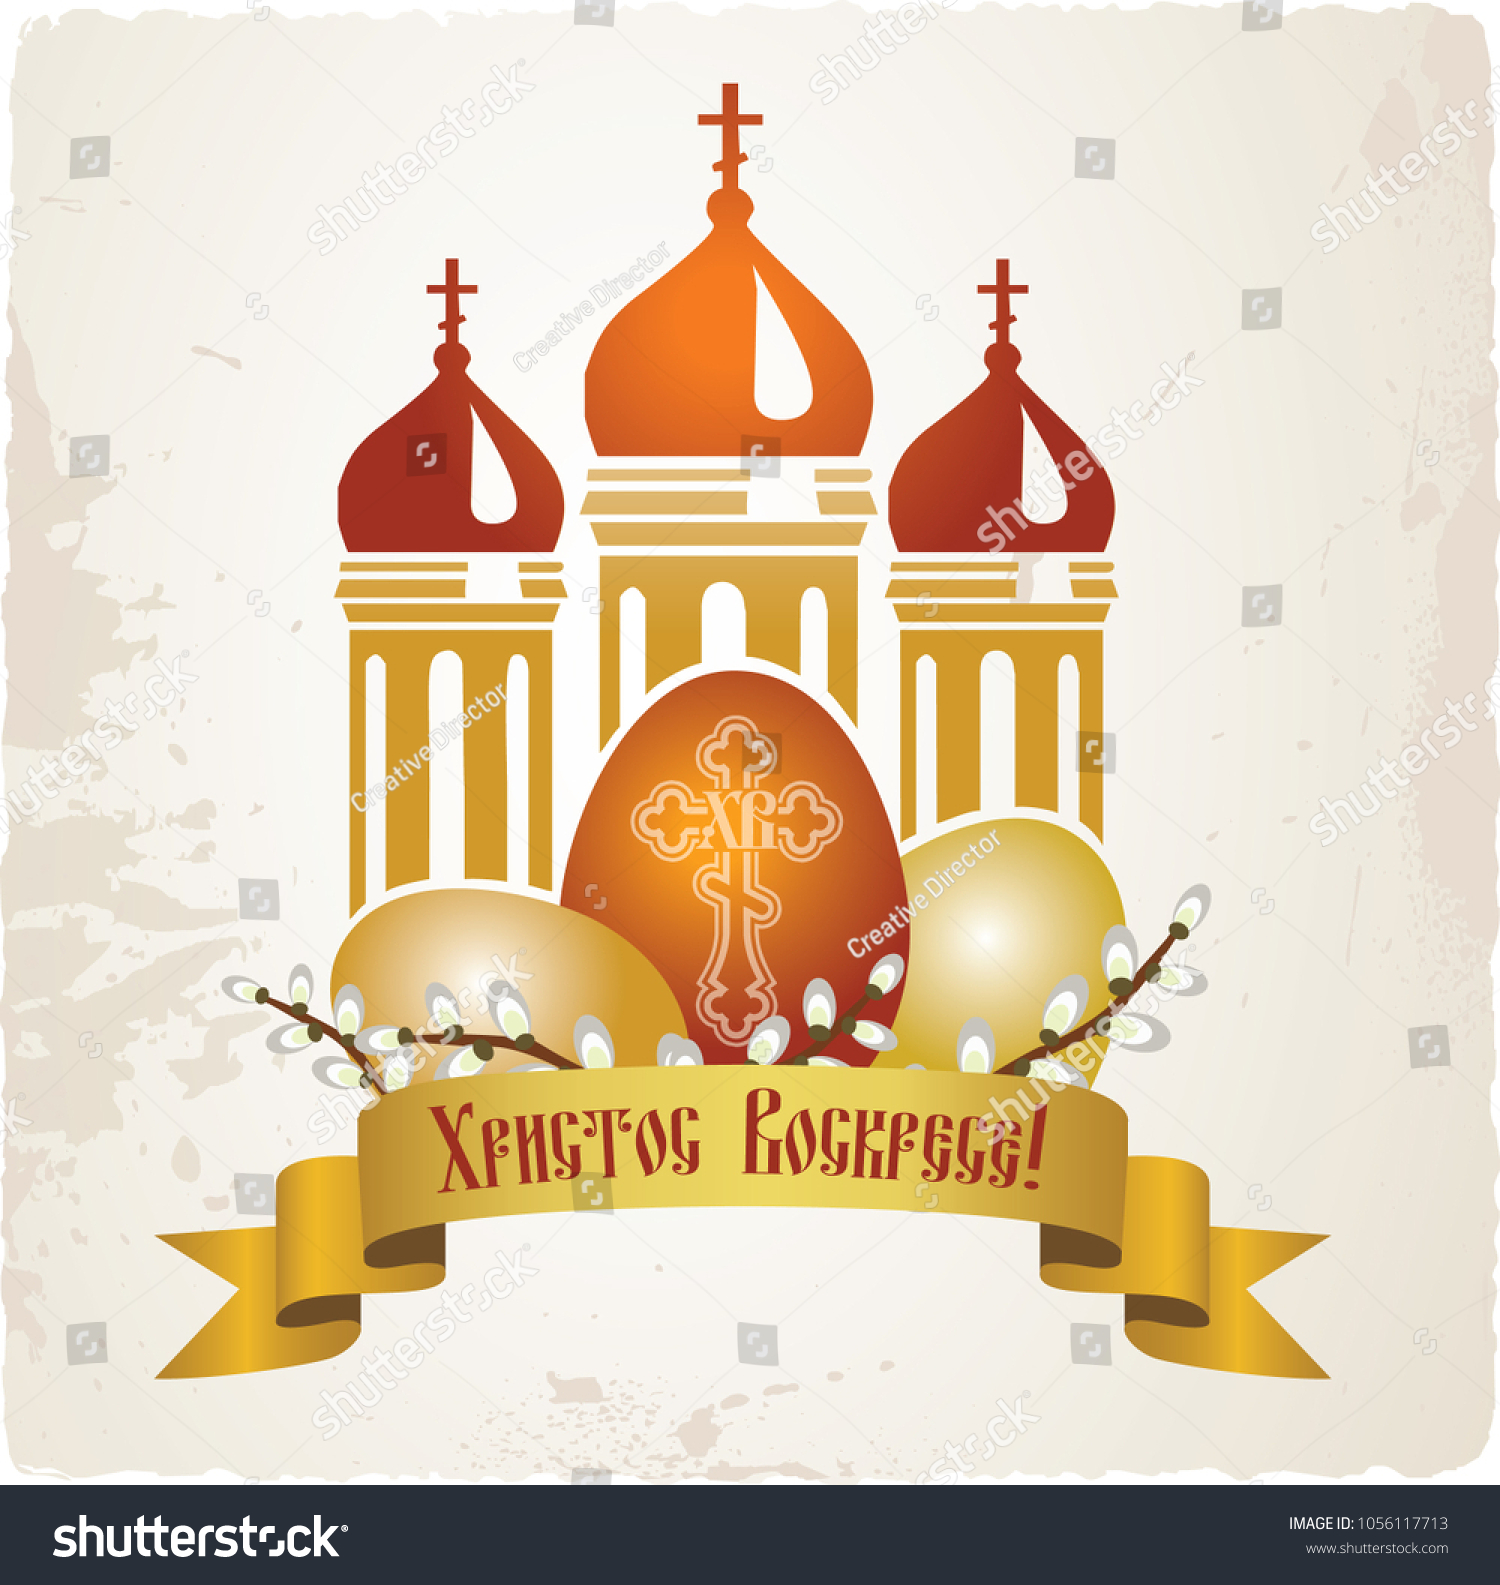 Russian easter greeting card russian abbreviation stock illustration russian easter greeting card with russian abbreviation letters for christ is risen and with the m4hsunfo